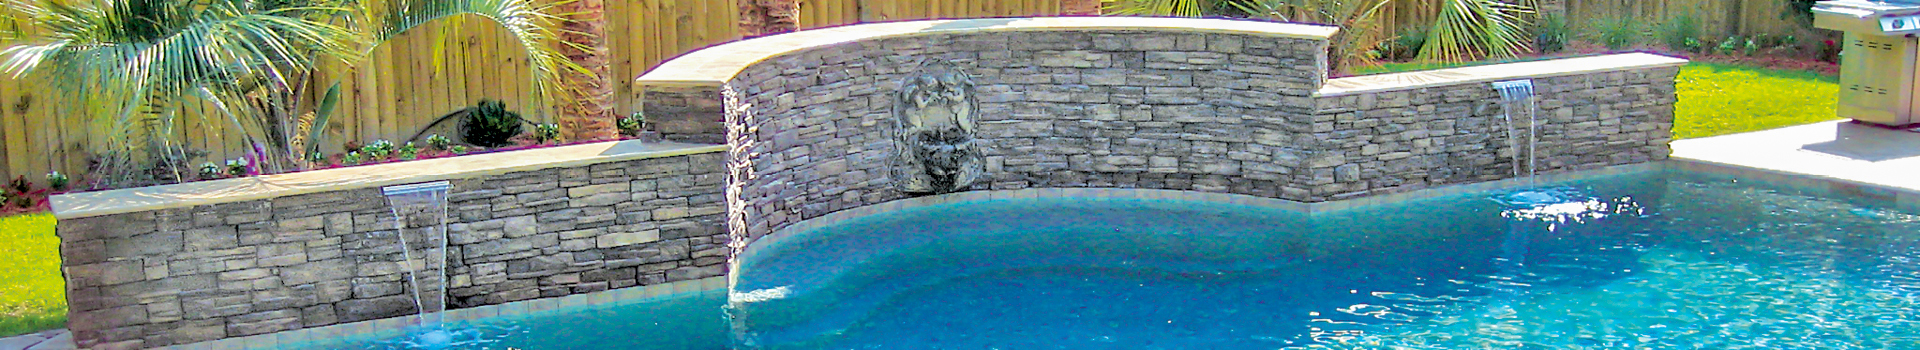 Gunite Swimming Pool With Cascade Water Features